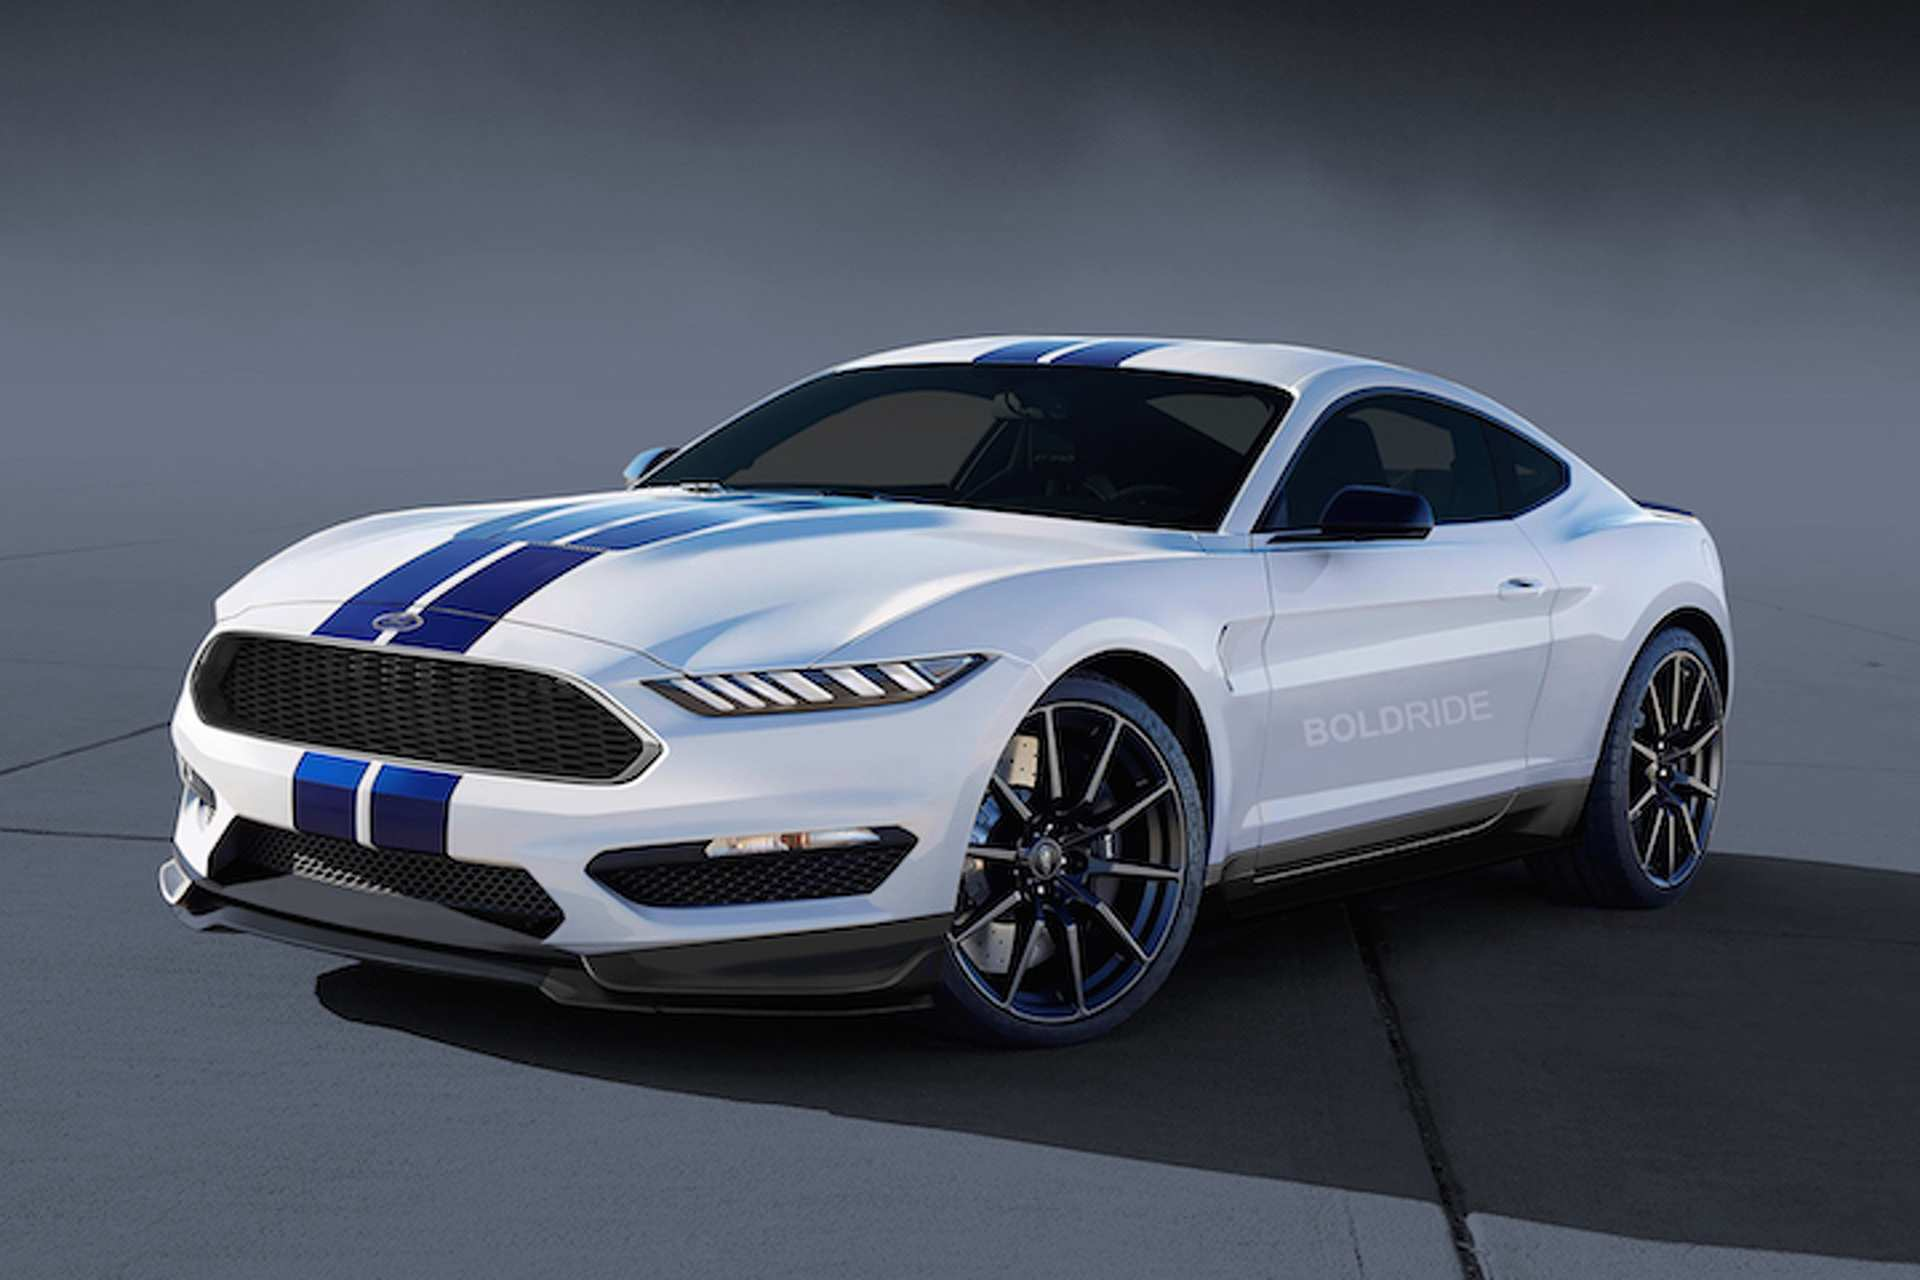 90 New 2020 Ford Mustang Images Interior by 2020 Ford Mustang Images